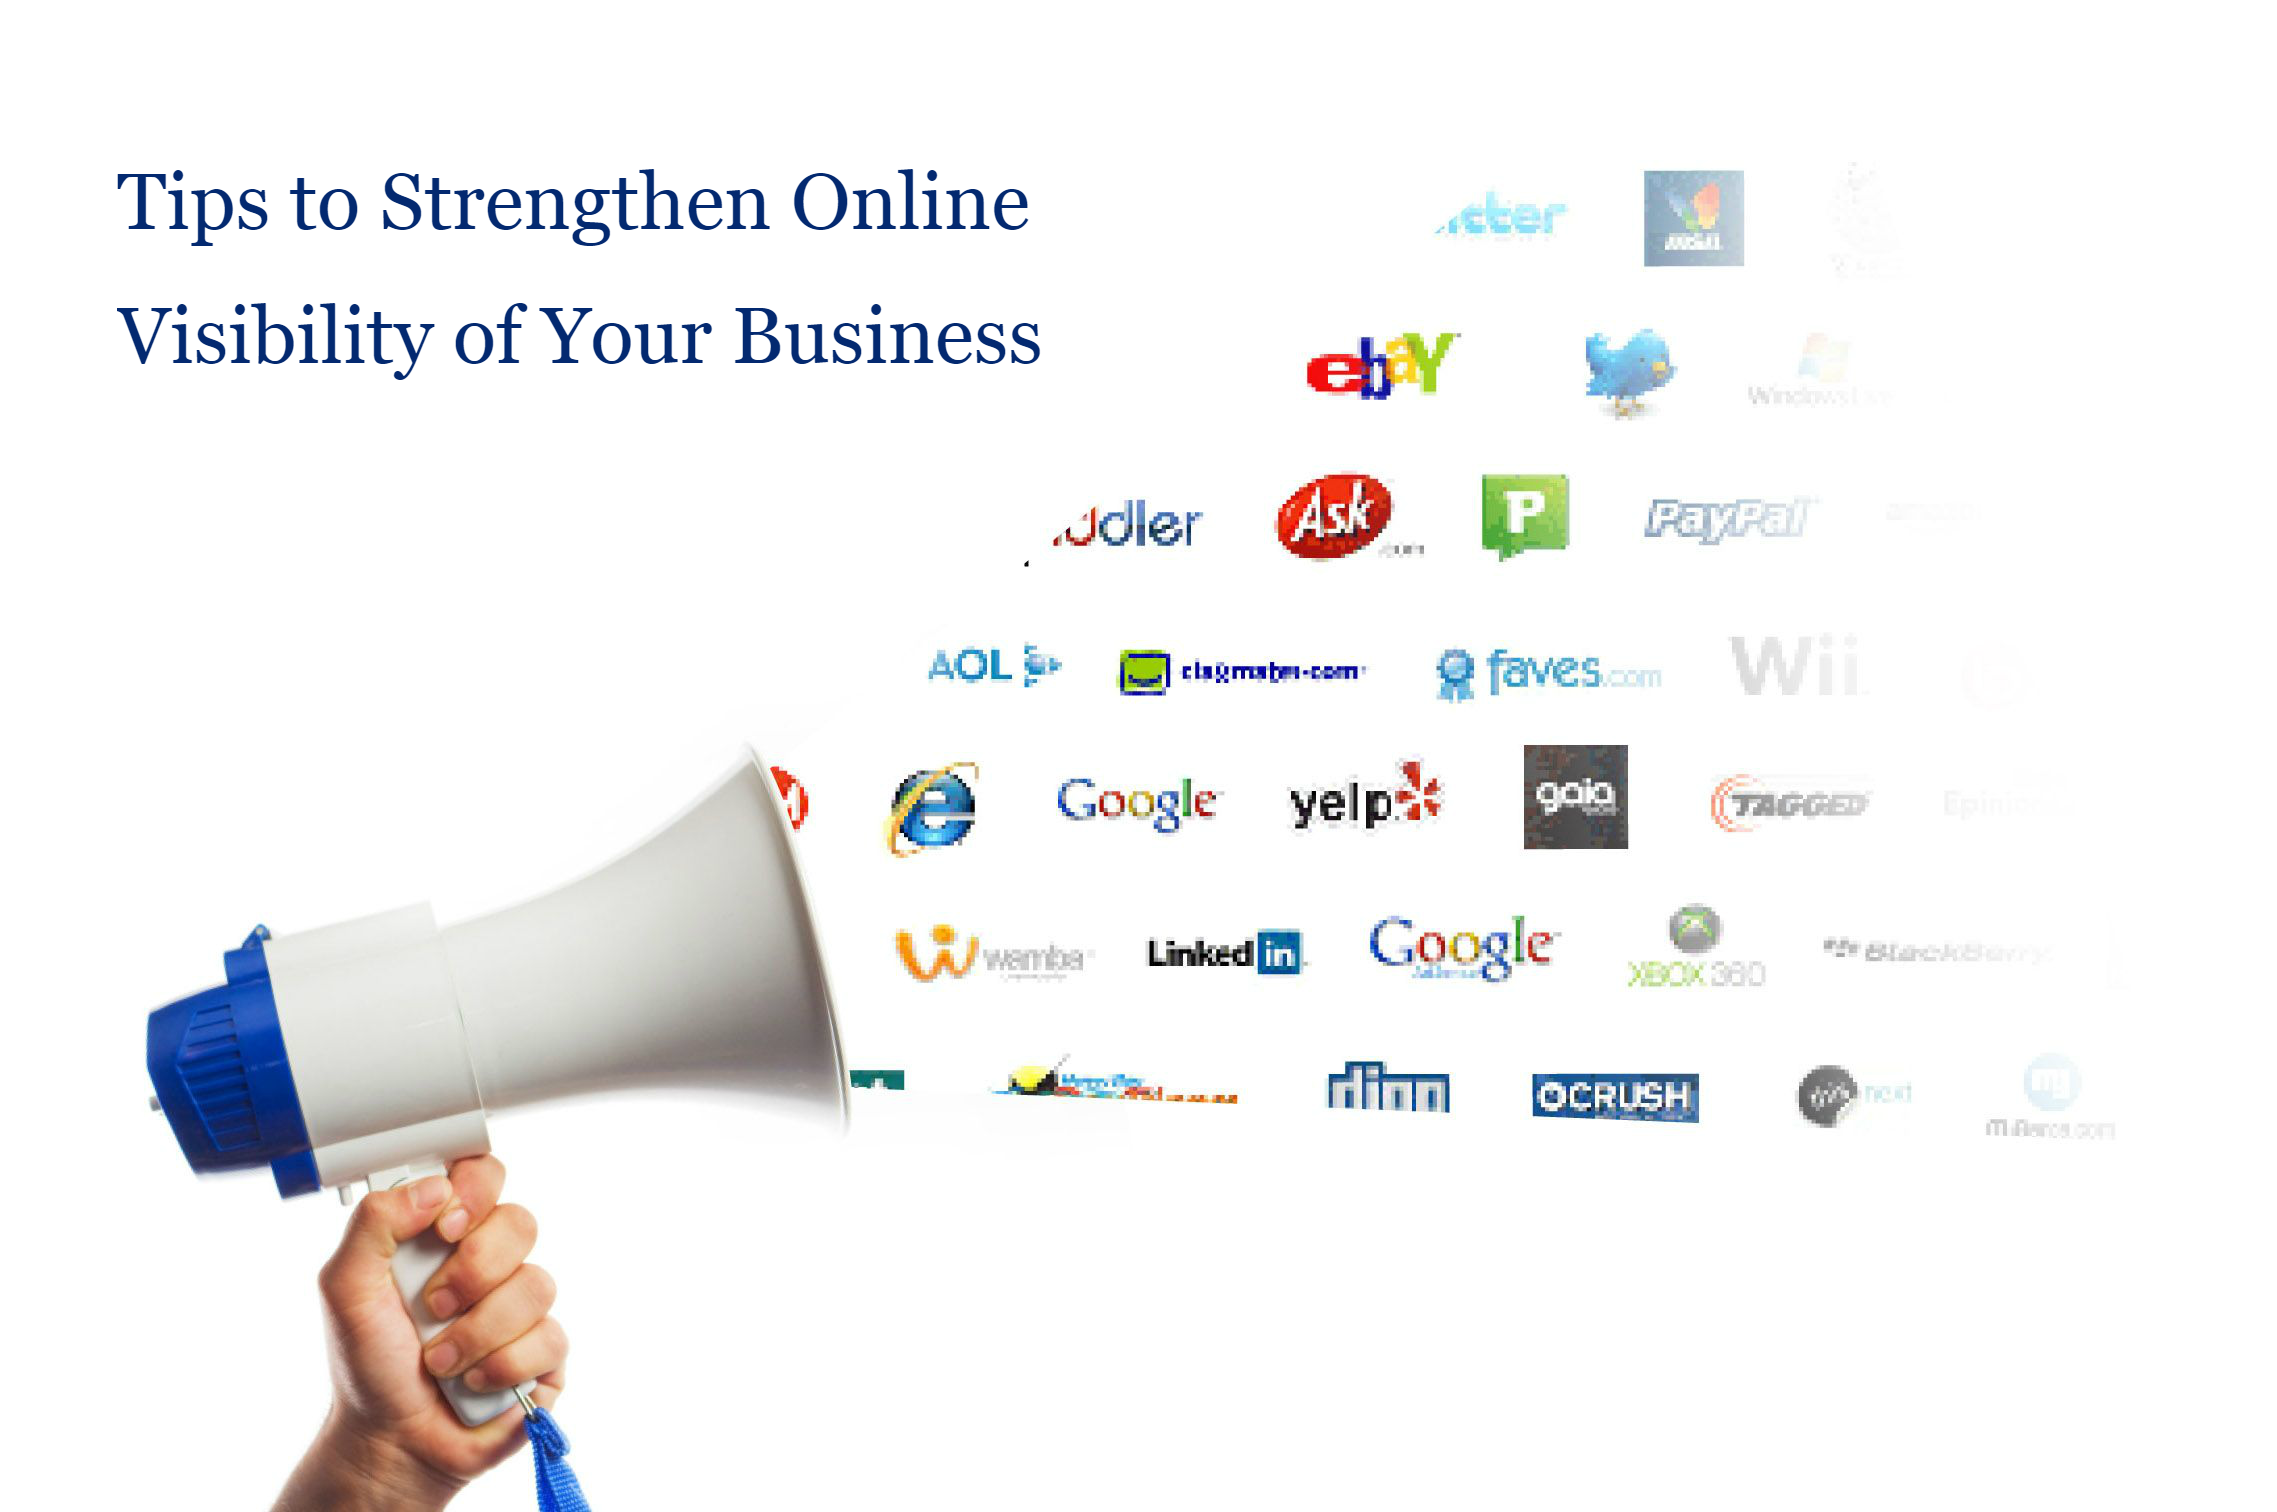 Tips to Strengthen Online Visibility of Your Business